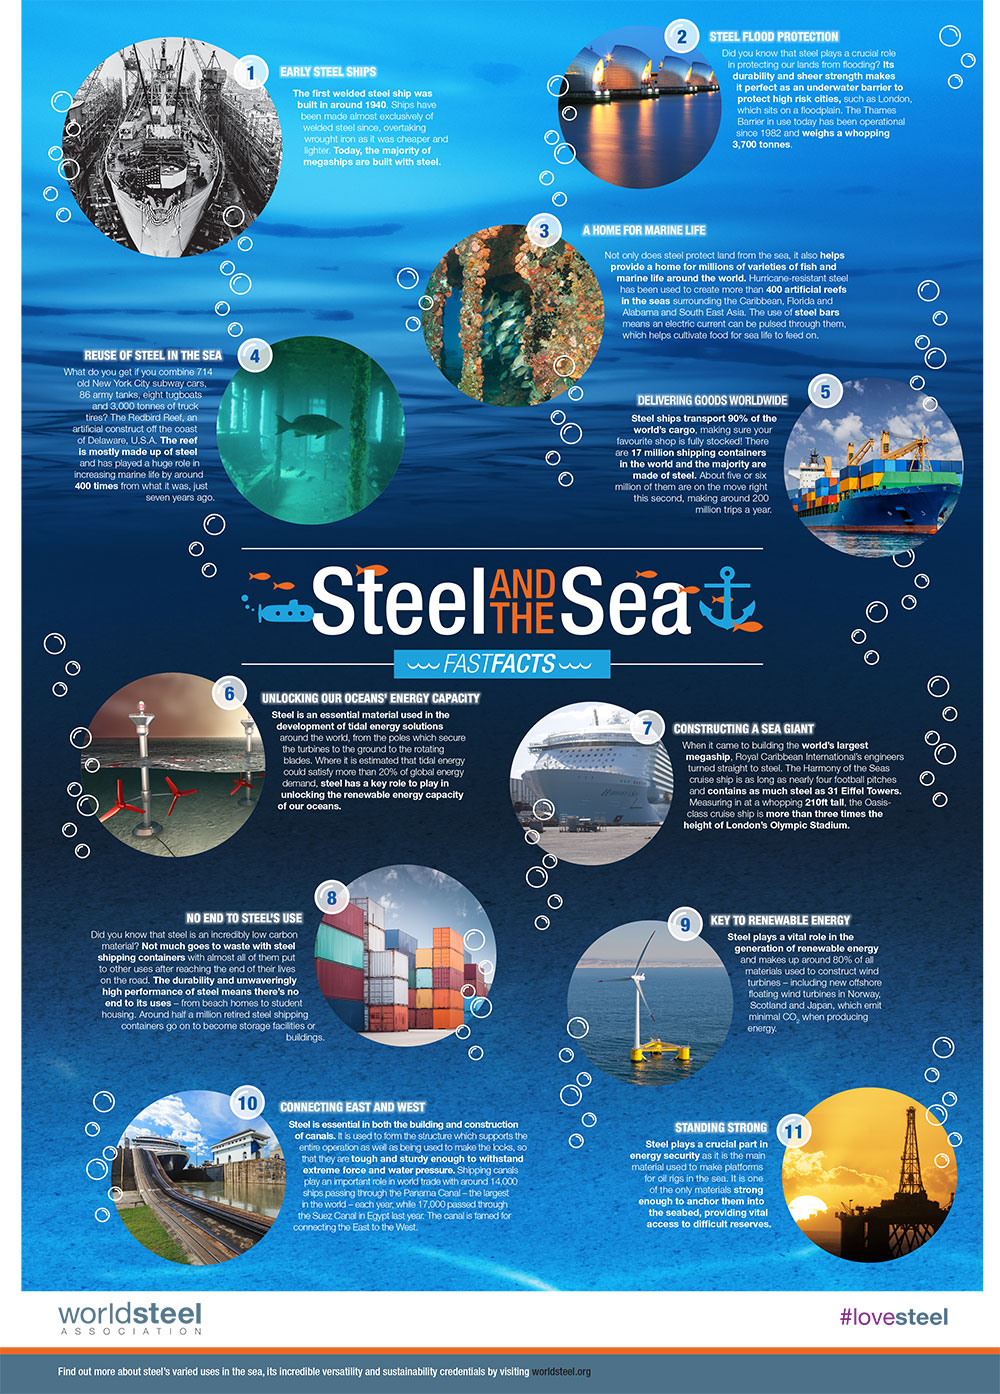 Marine metal: the partnership between steel and the sea